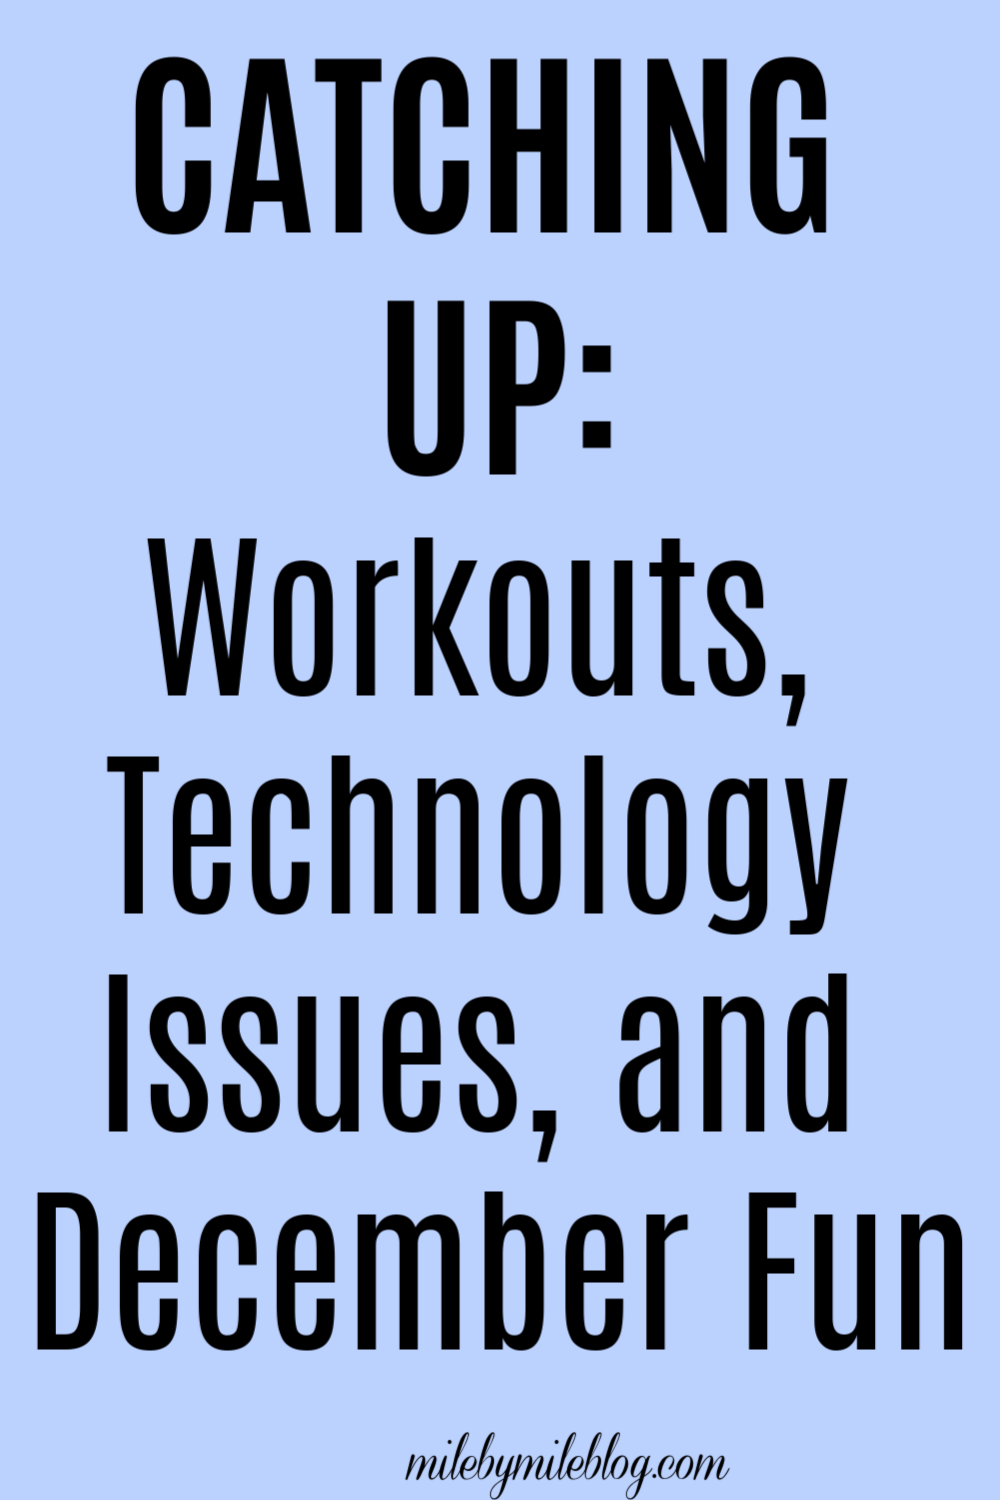 The past month has been a little hectic so I am catching up with a post about my workouts, technology, and some of the fun things we have been doing the holiday season! #workouts #life #holidays